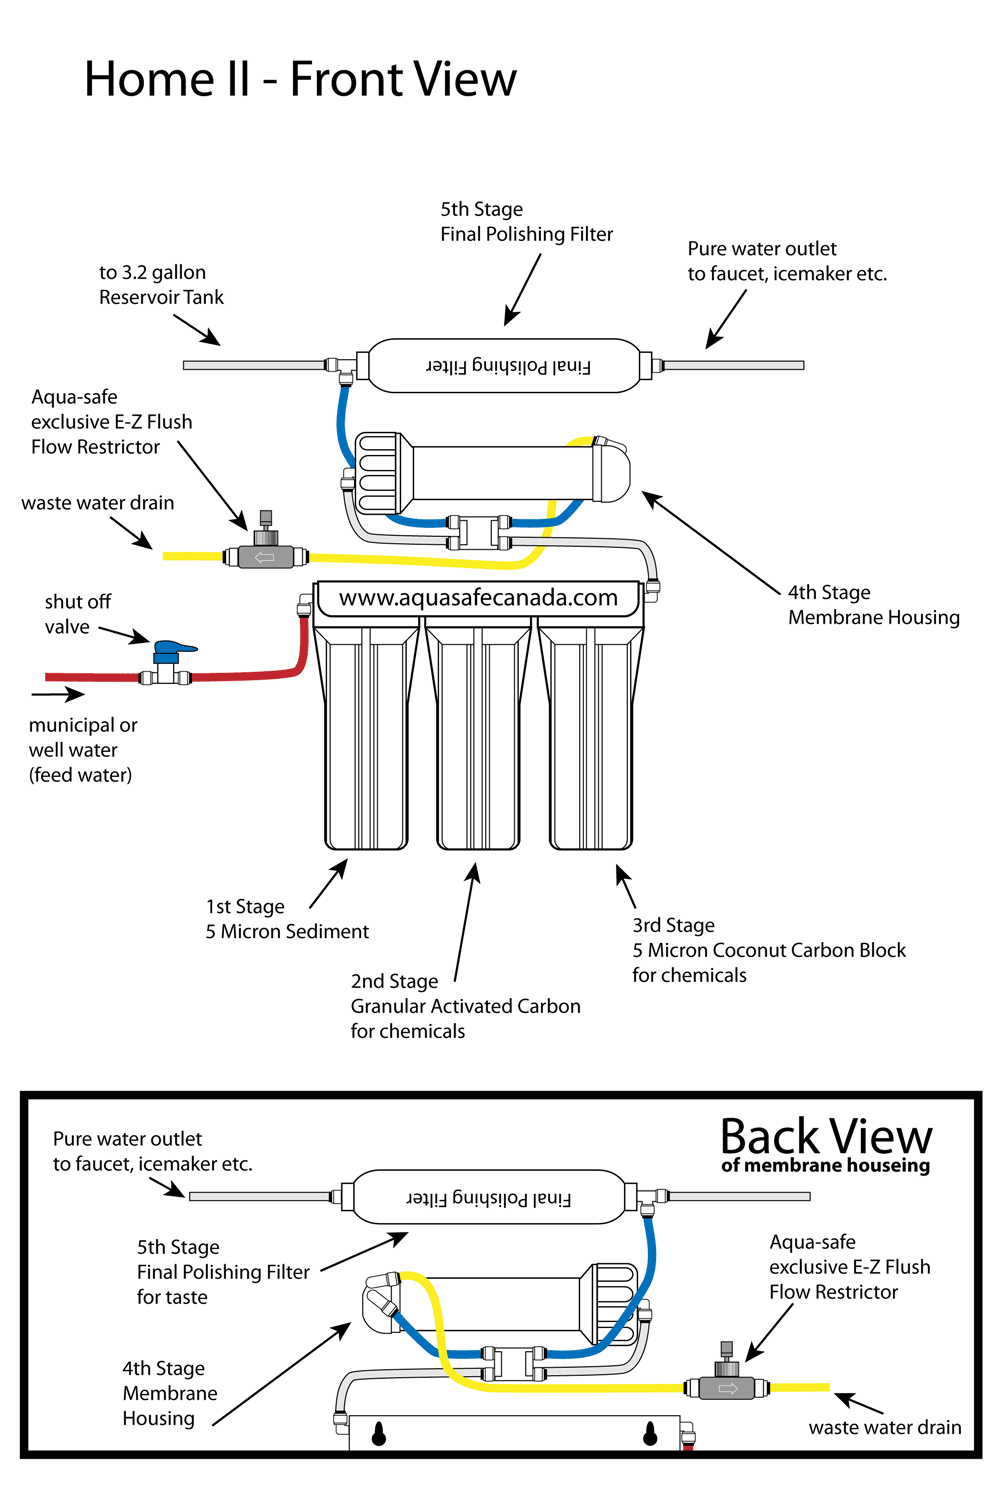 [WRG-4232] Piping Diagram For Reverse Osmosis System